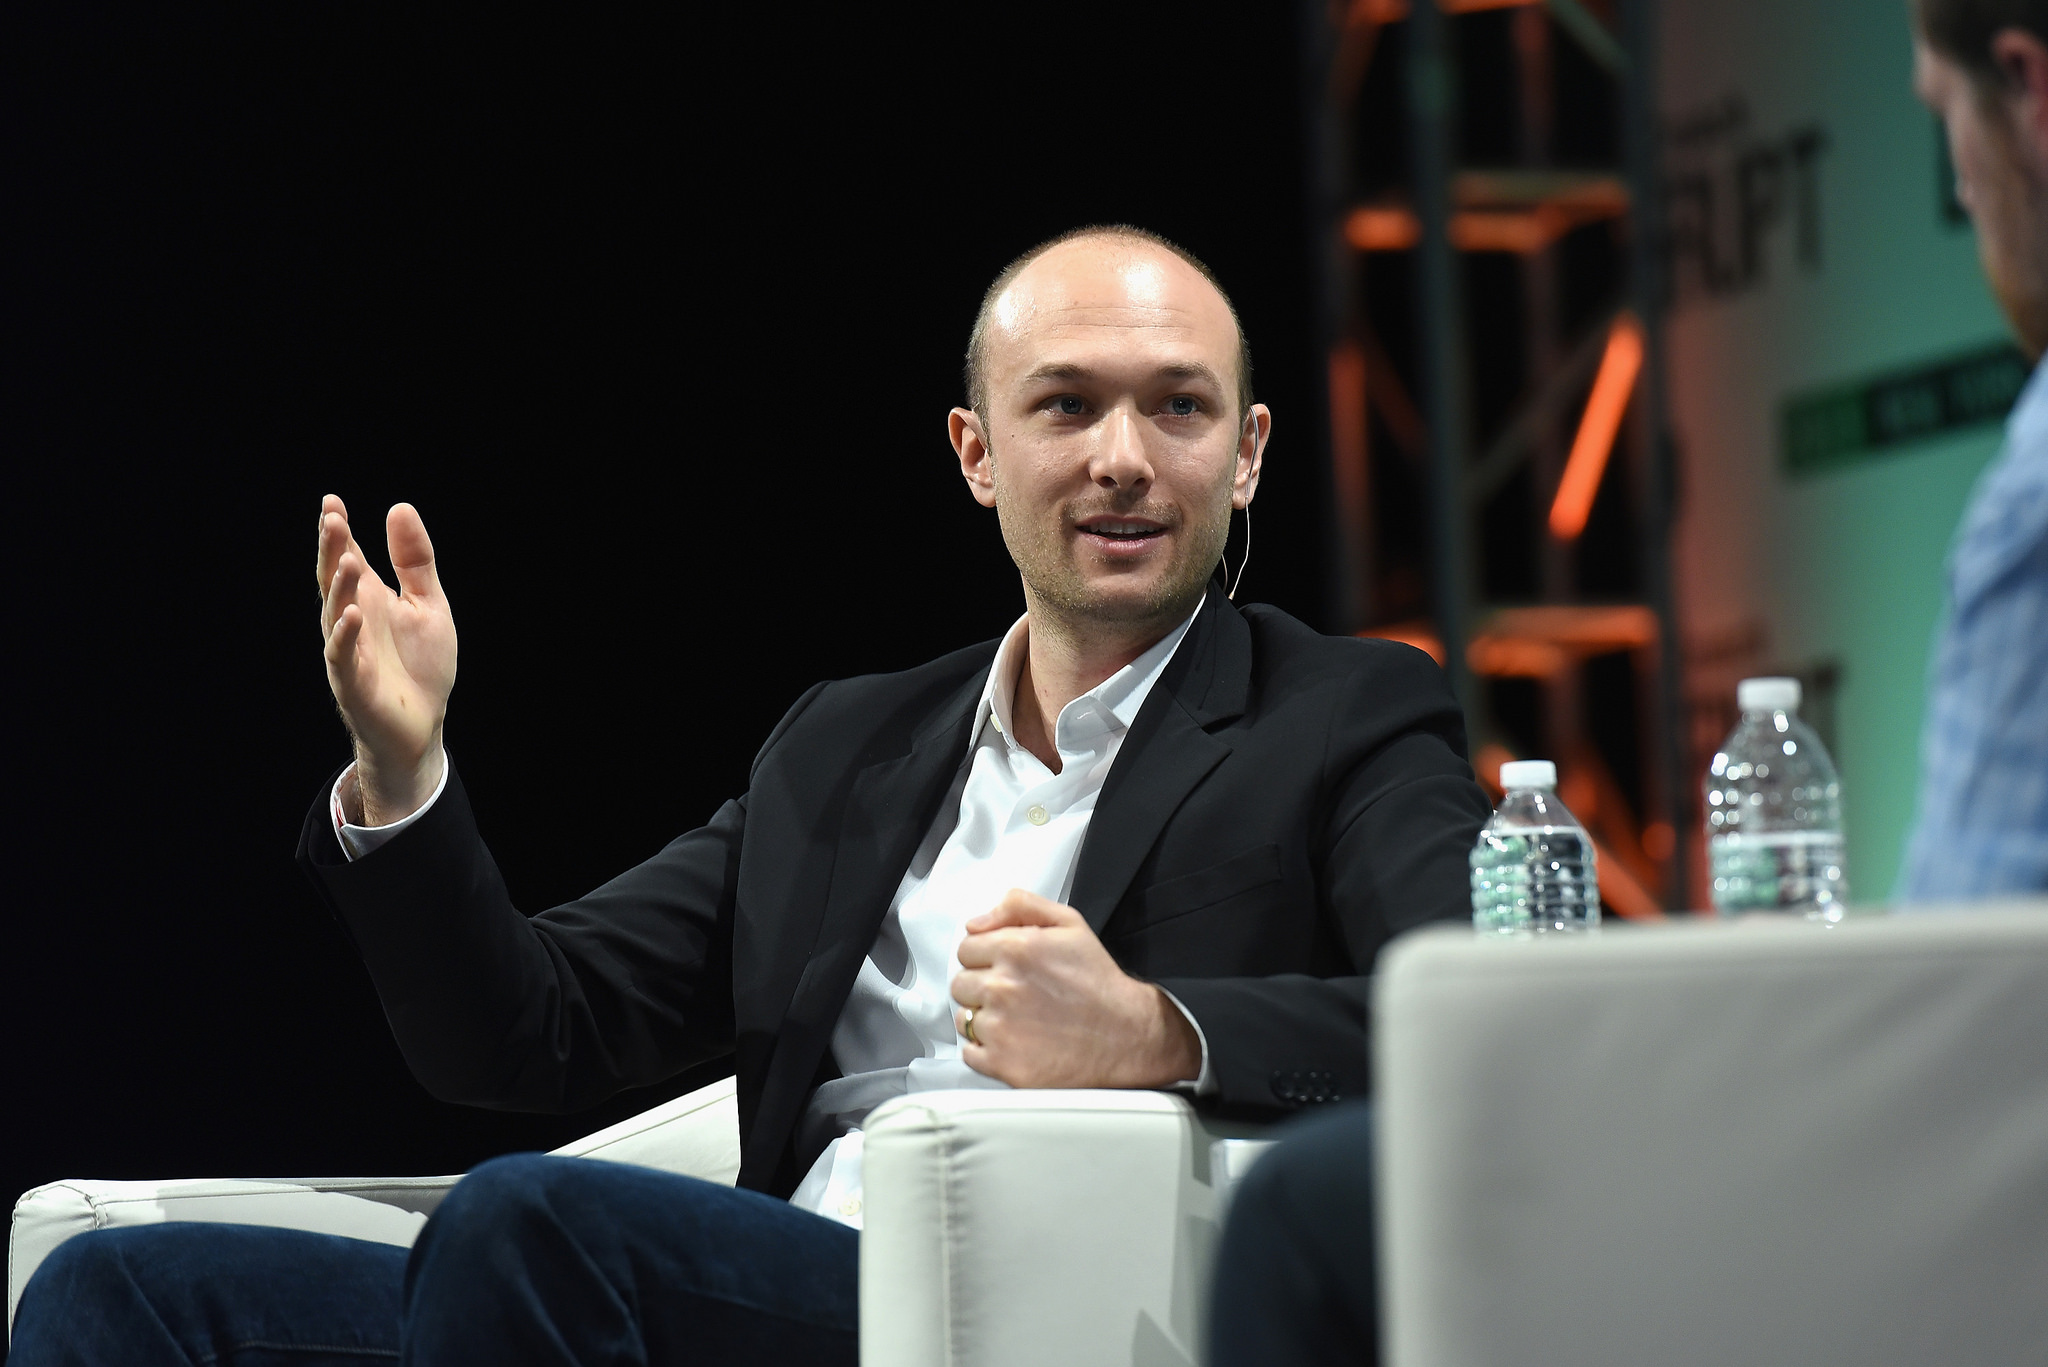 Co-Founder and CEO of Lyft, Logan Green